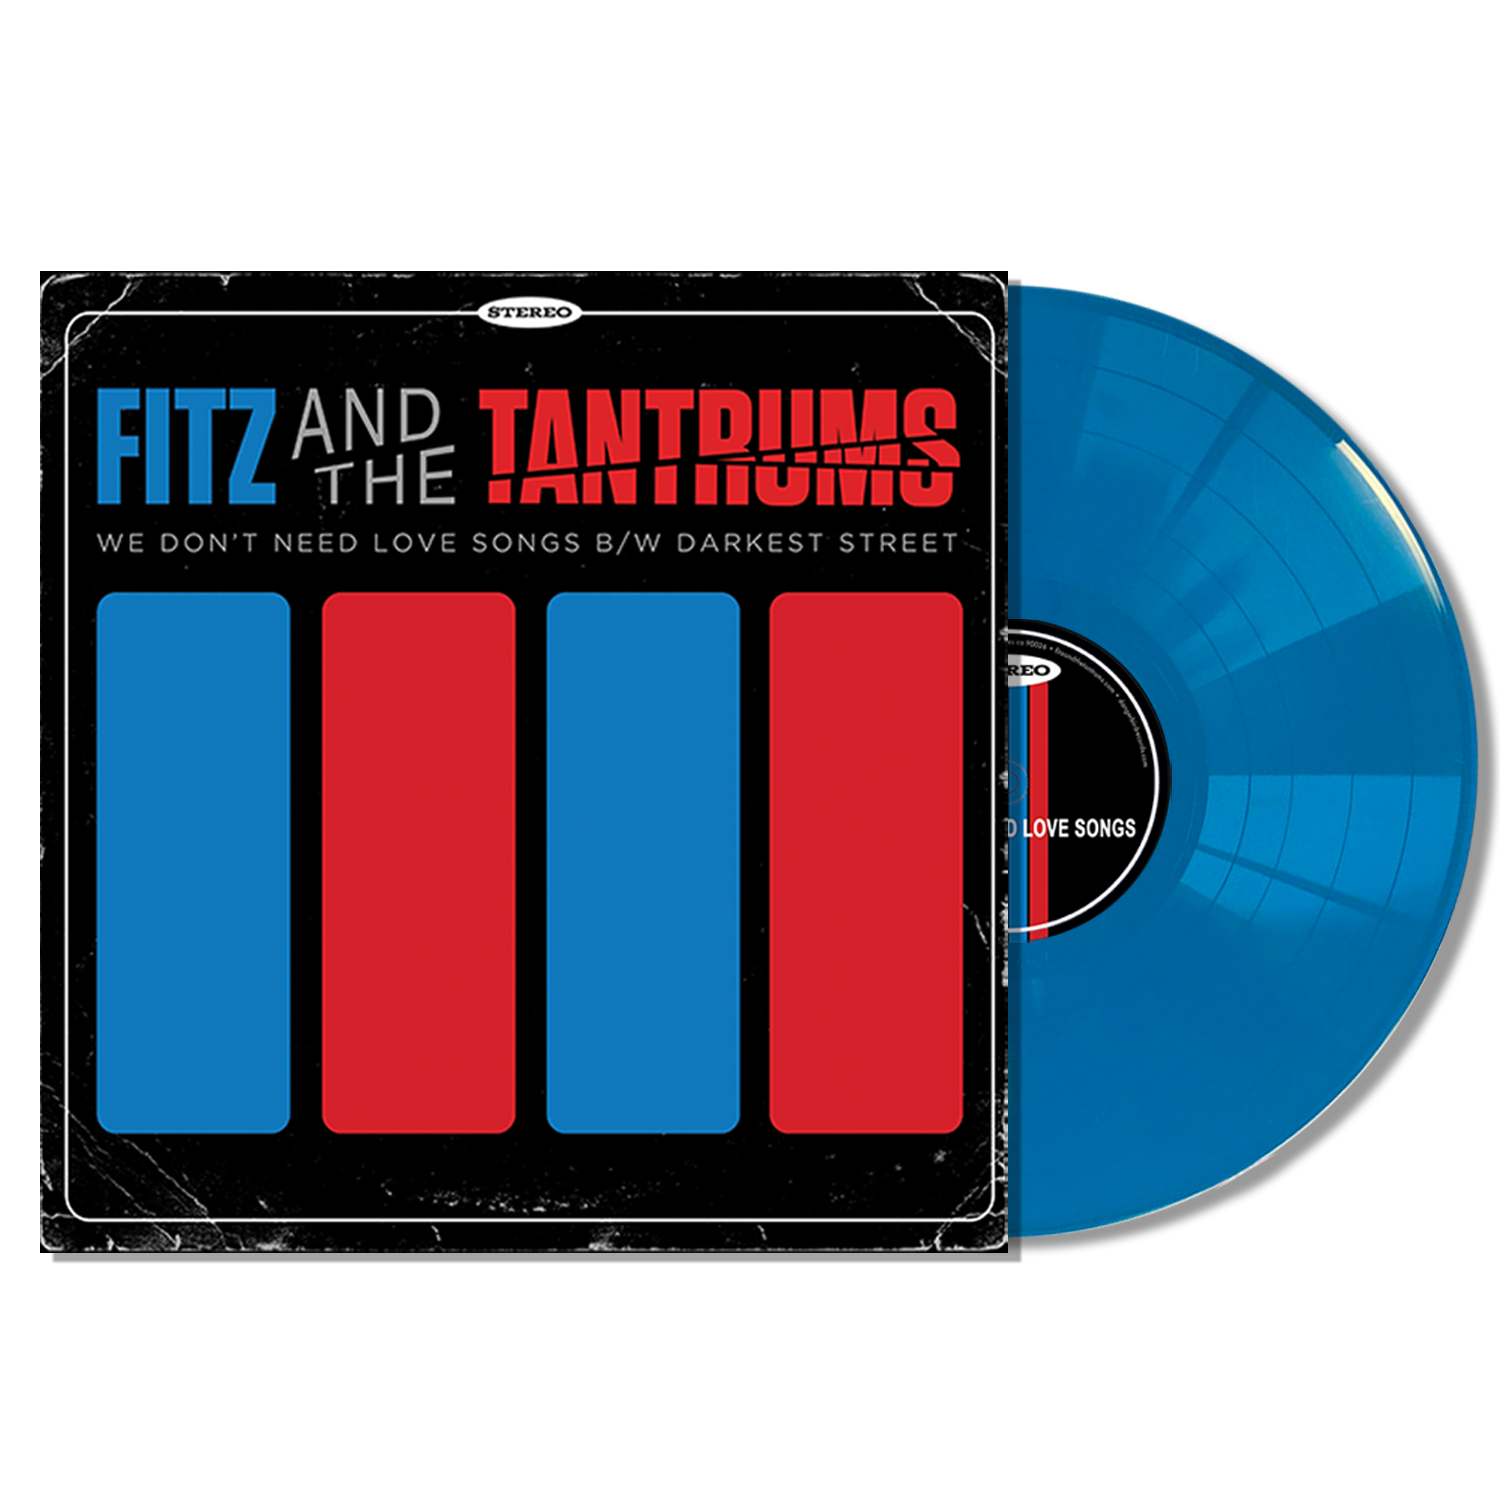 Fitz and the Tantrums - Pickin' Up the Pieces 10th Anniversary Bundle